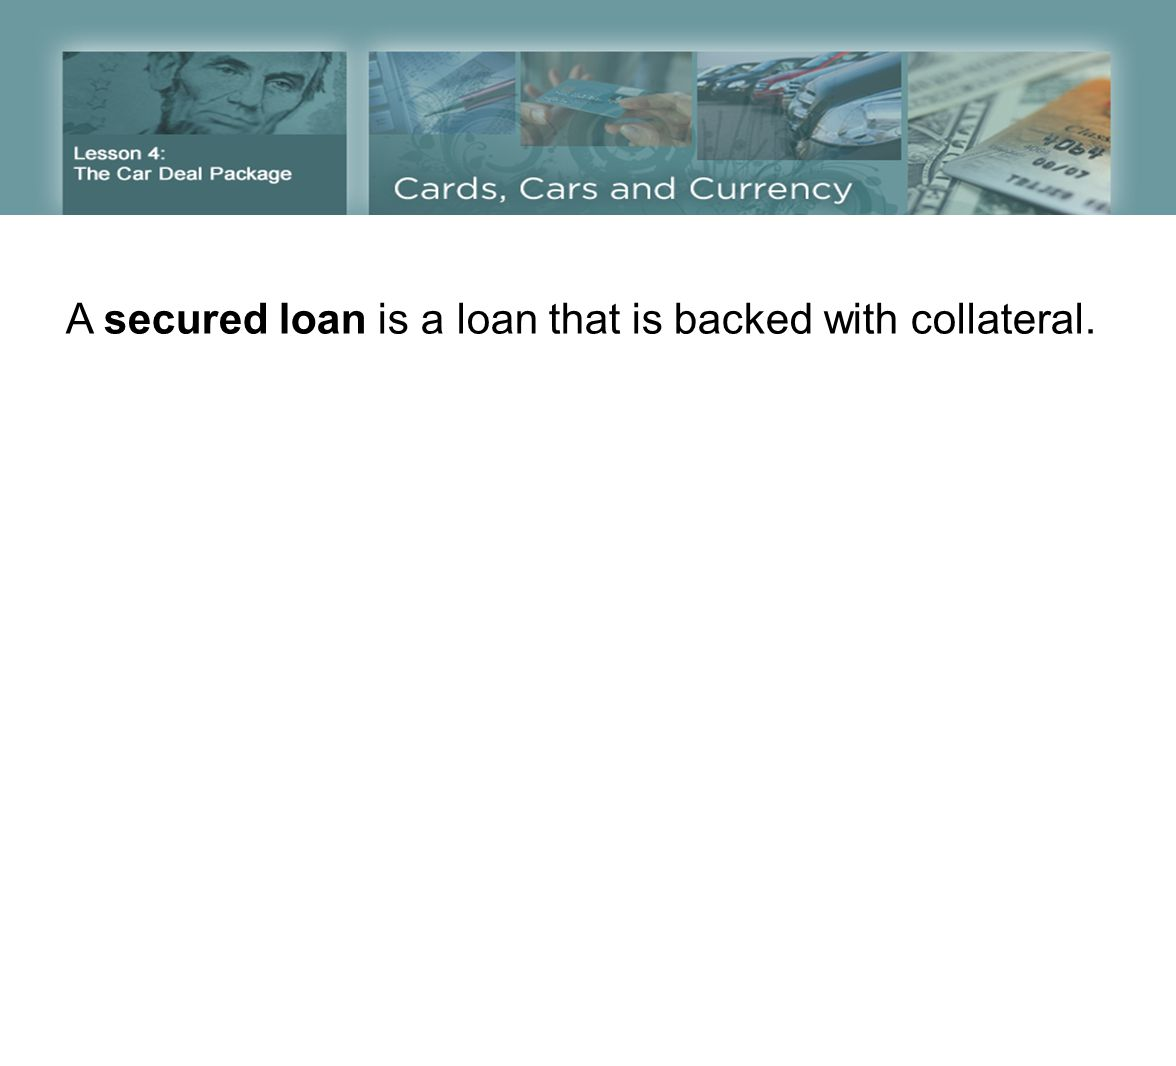 A secured loan is a loan that is backed with collateral.